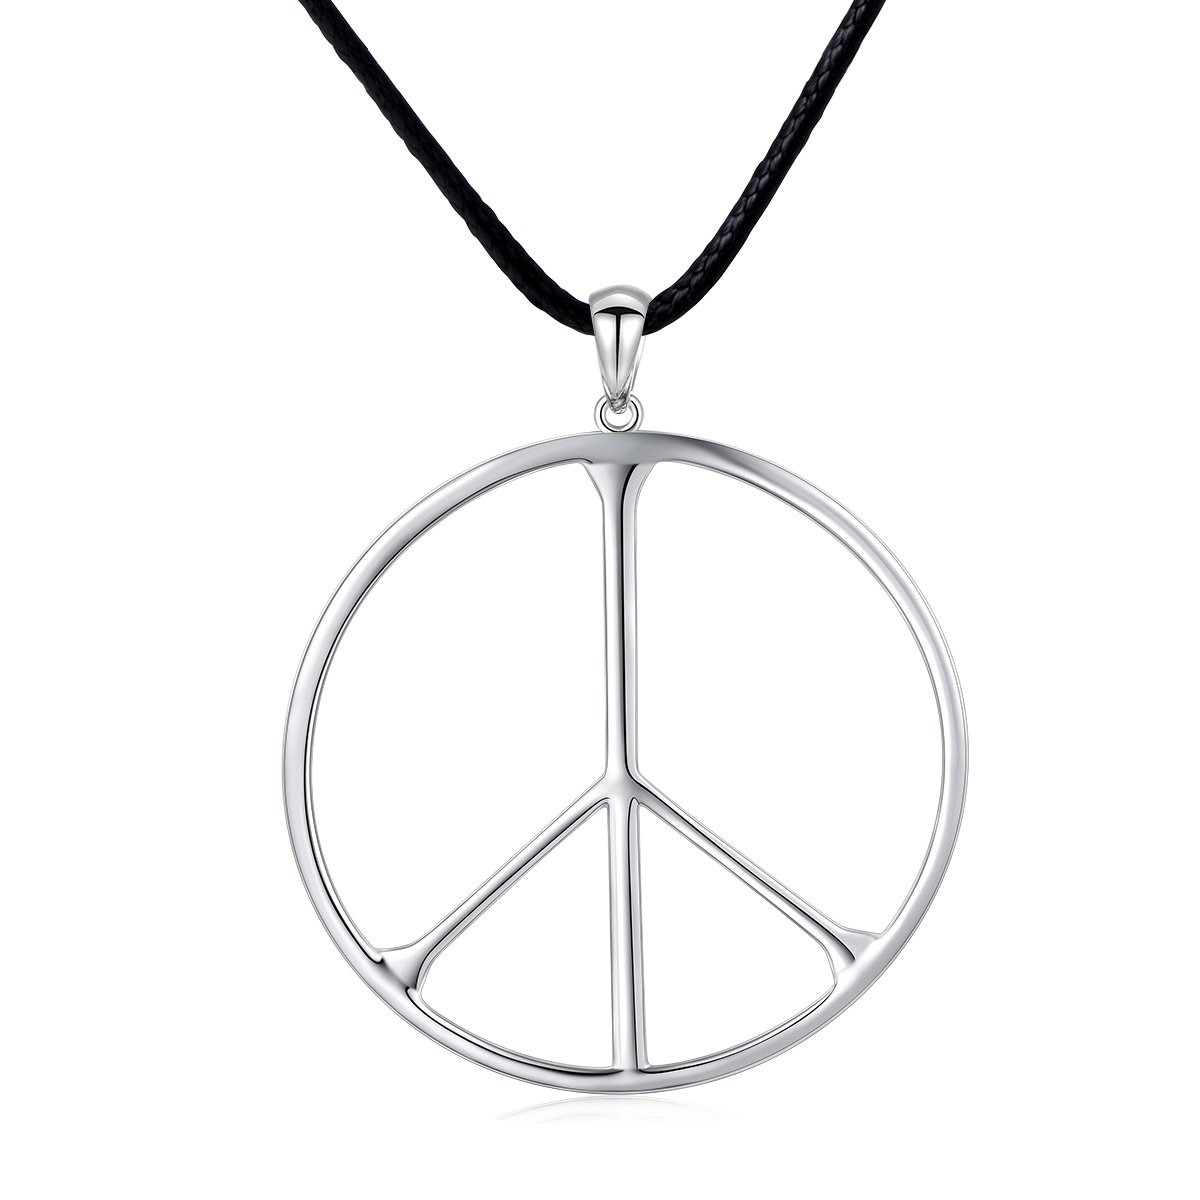 SILVER MOUNTAIN S925 Sterling Silver Classic Large Peace Sign Unisex Pendant Necklace for Men Women